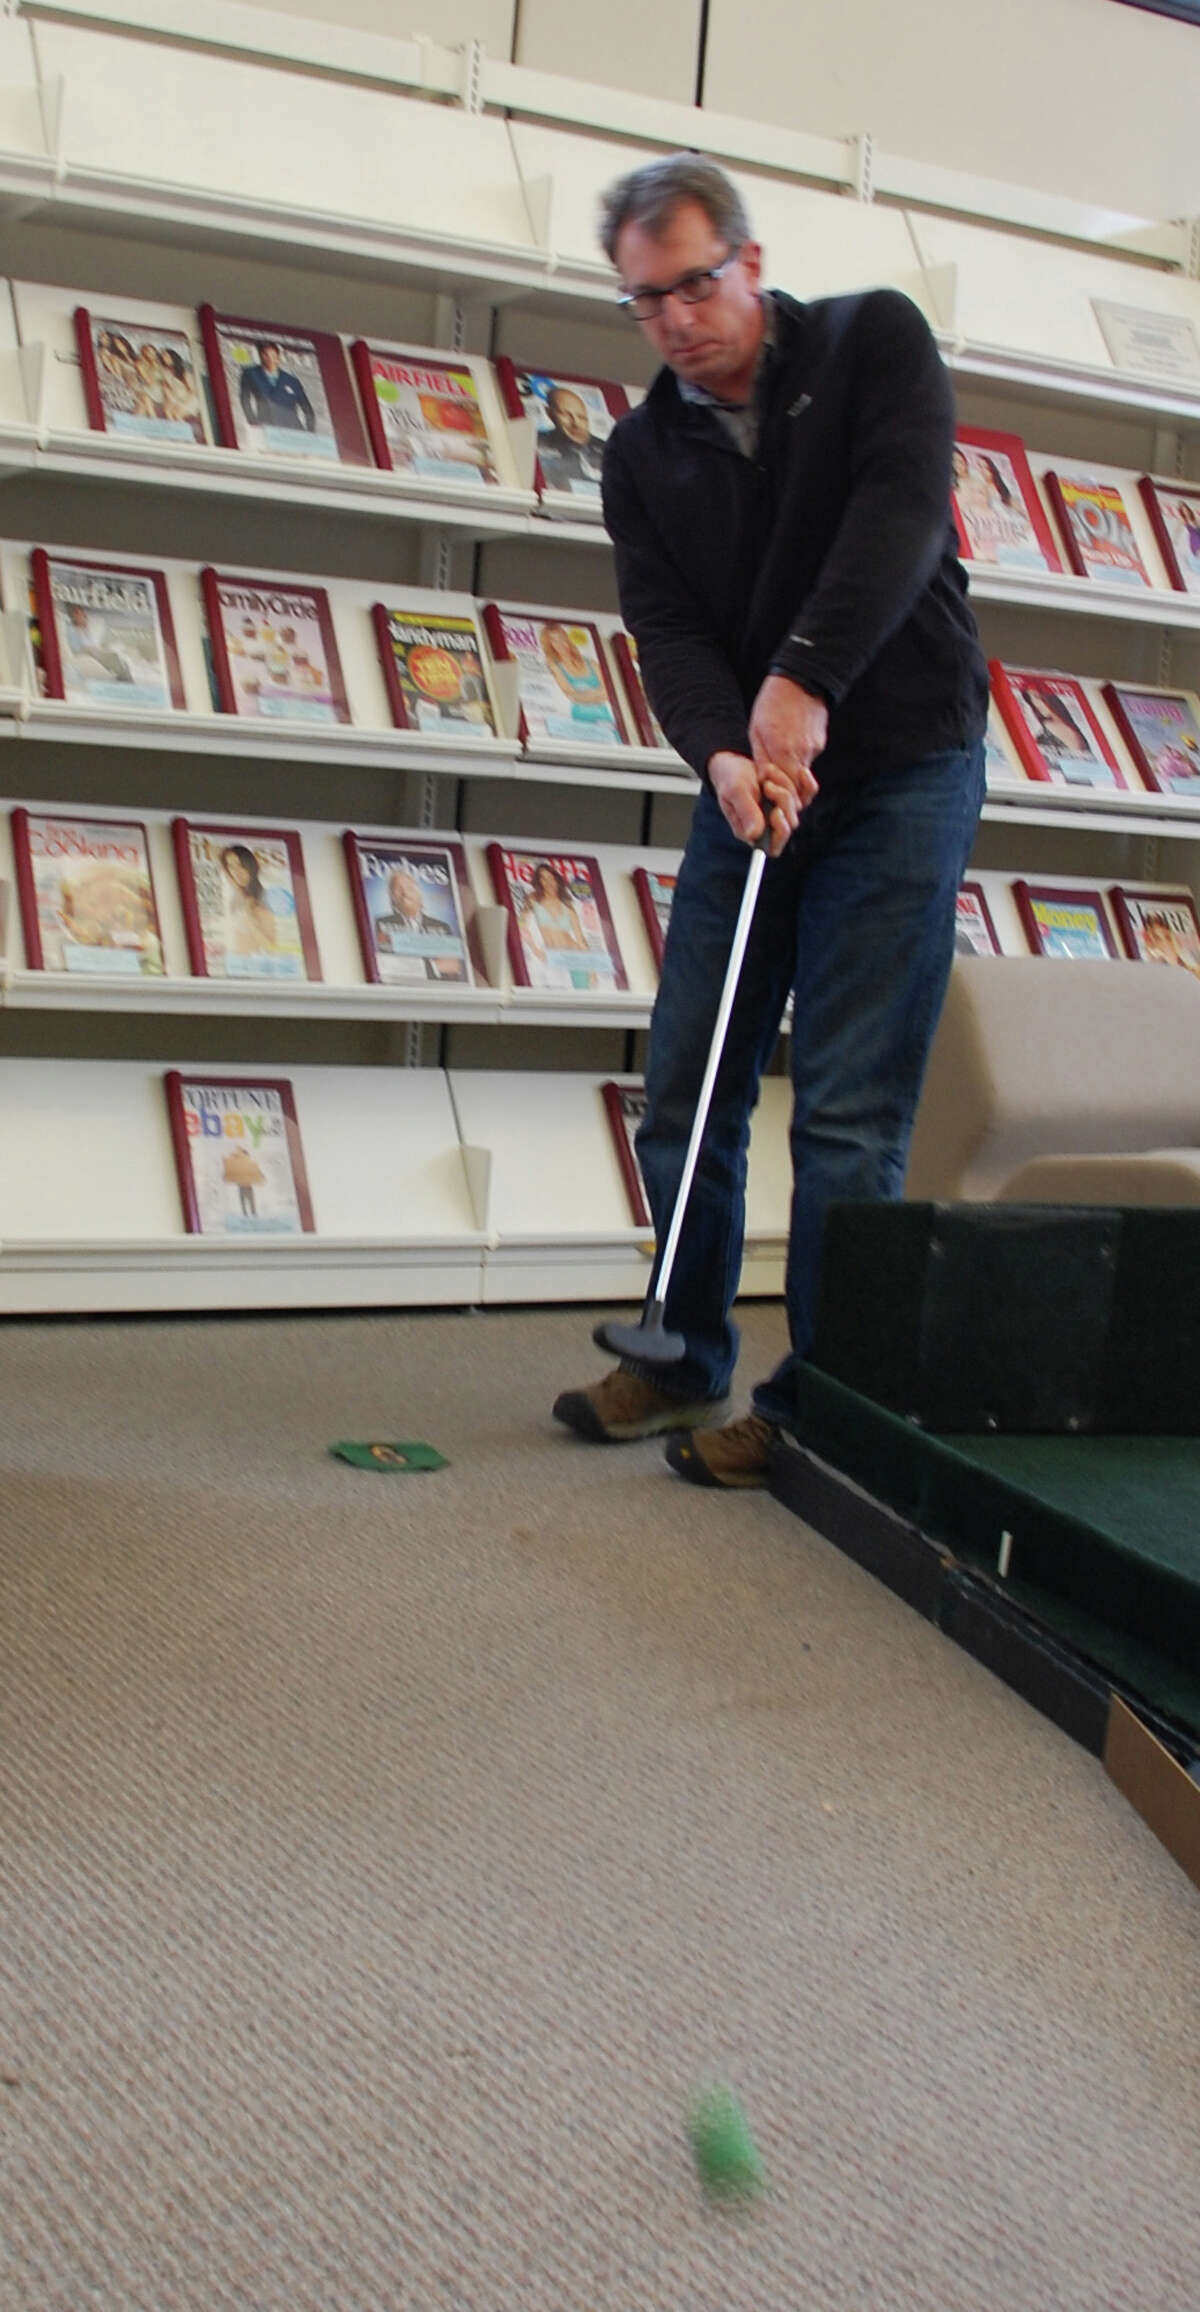 """Neal Fink of Fairfield unleashes a putt on a """"green"""" set up Sunday for a mini golf fundraiser at Fairfield Woods Branch Libray. FAIRFIELD CITIZEN, CT 3/3/13"""